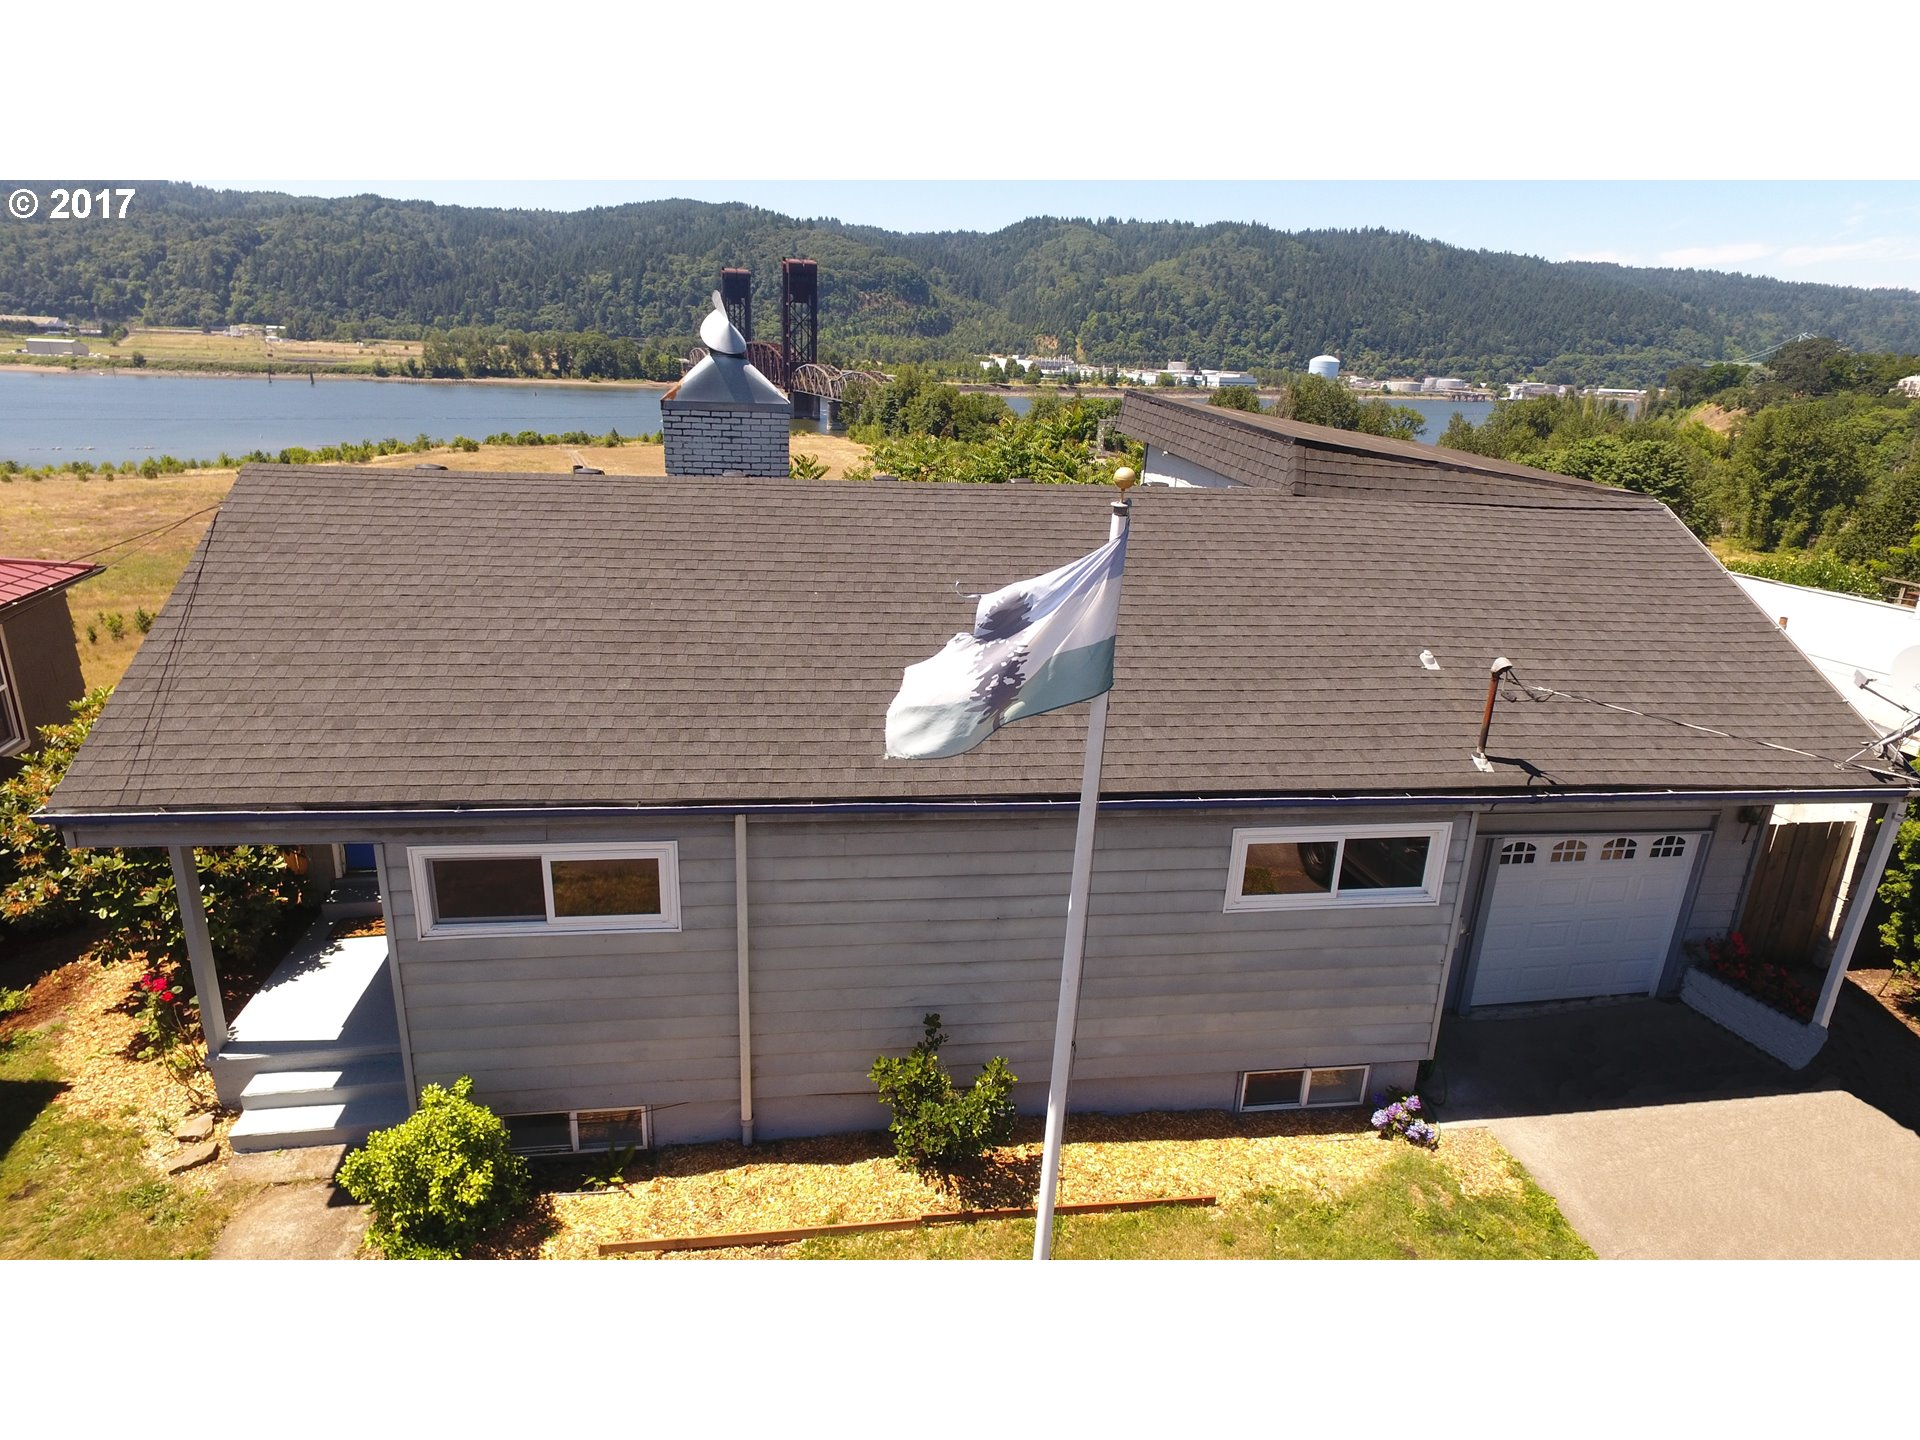 Price Reduced! Amazing Views of the Willamette River, St. Johns Bridge, & Forest Park. University Park area close to Univ. of Portland. Excellent rental history w 2 possibly 3 separate living areas. Open Kitchen to Living rm. Master suite w/walk-in, finished basement w/Family rm. & Bonus/5th brdm. Large double Deck & Patio w/expanding River views! Updates include: paint, fixtures, garage door, newer roof, carpet, etc. Open Sat 8/19 12-2